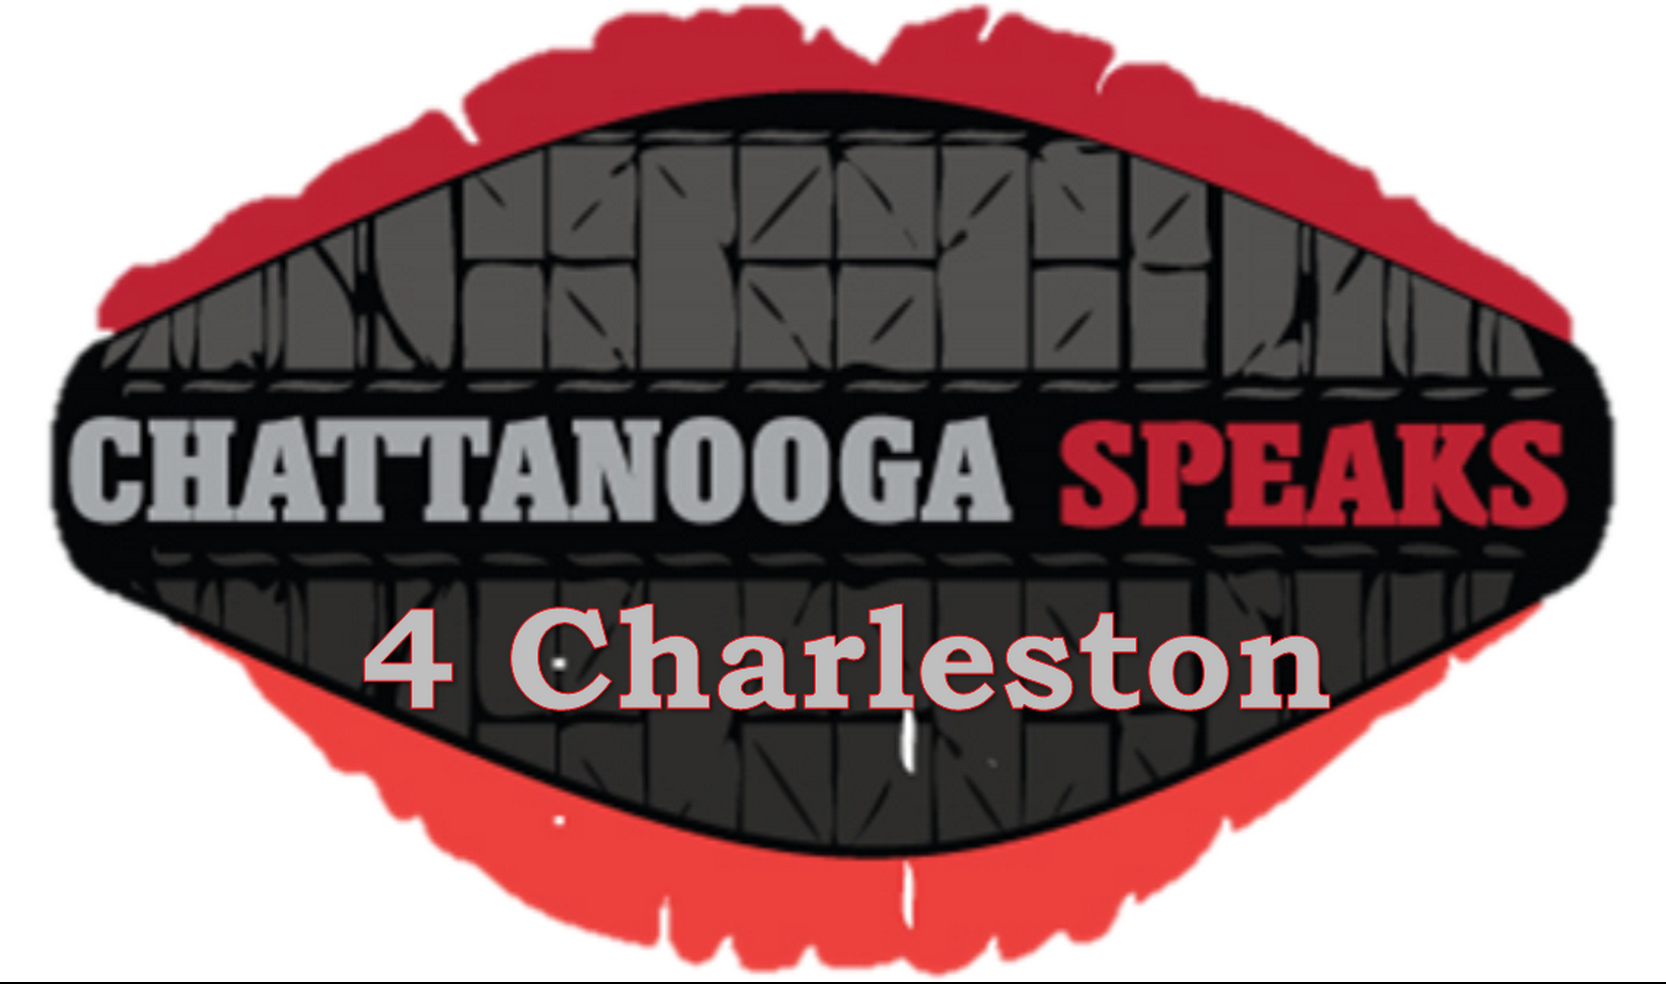 Learn more about Chattanooga Speaks for Charleston